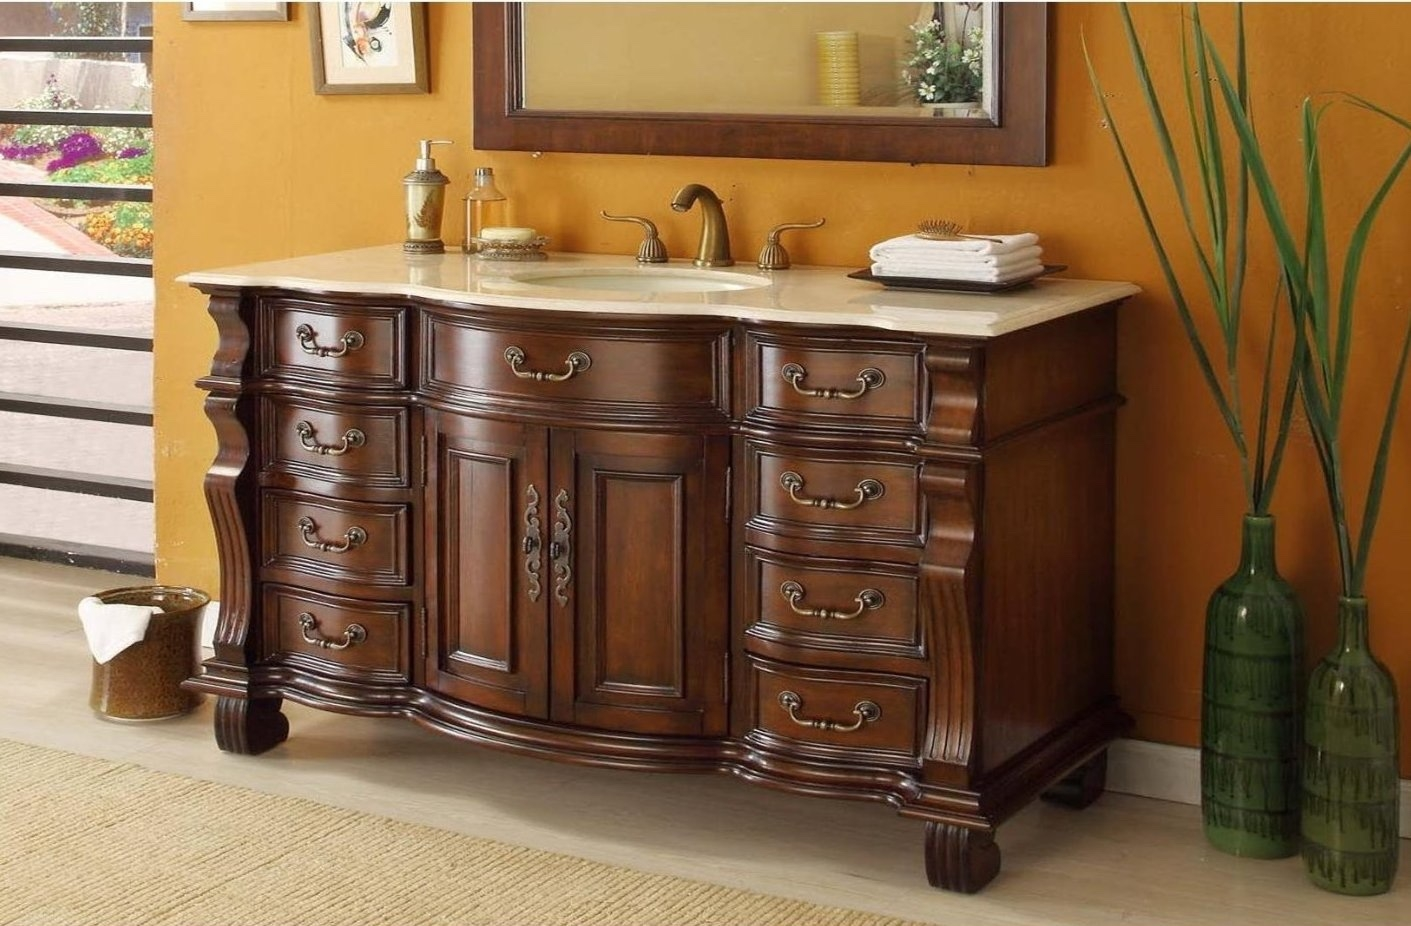 54 Inch Bathroom Vanity Without Top